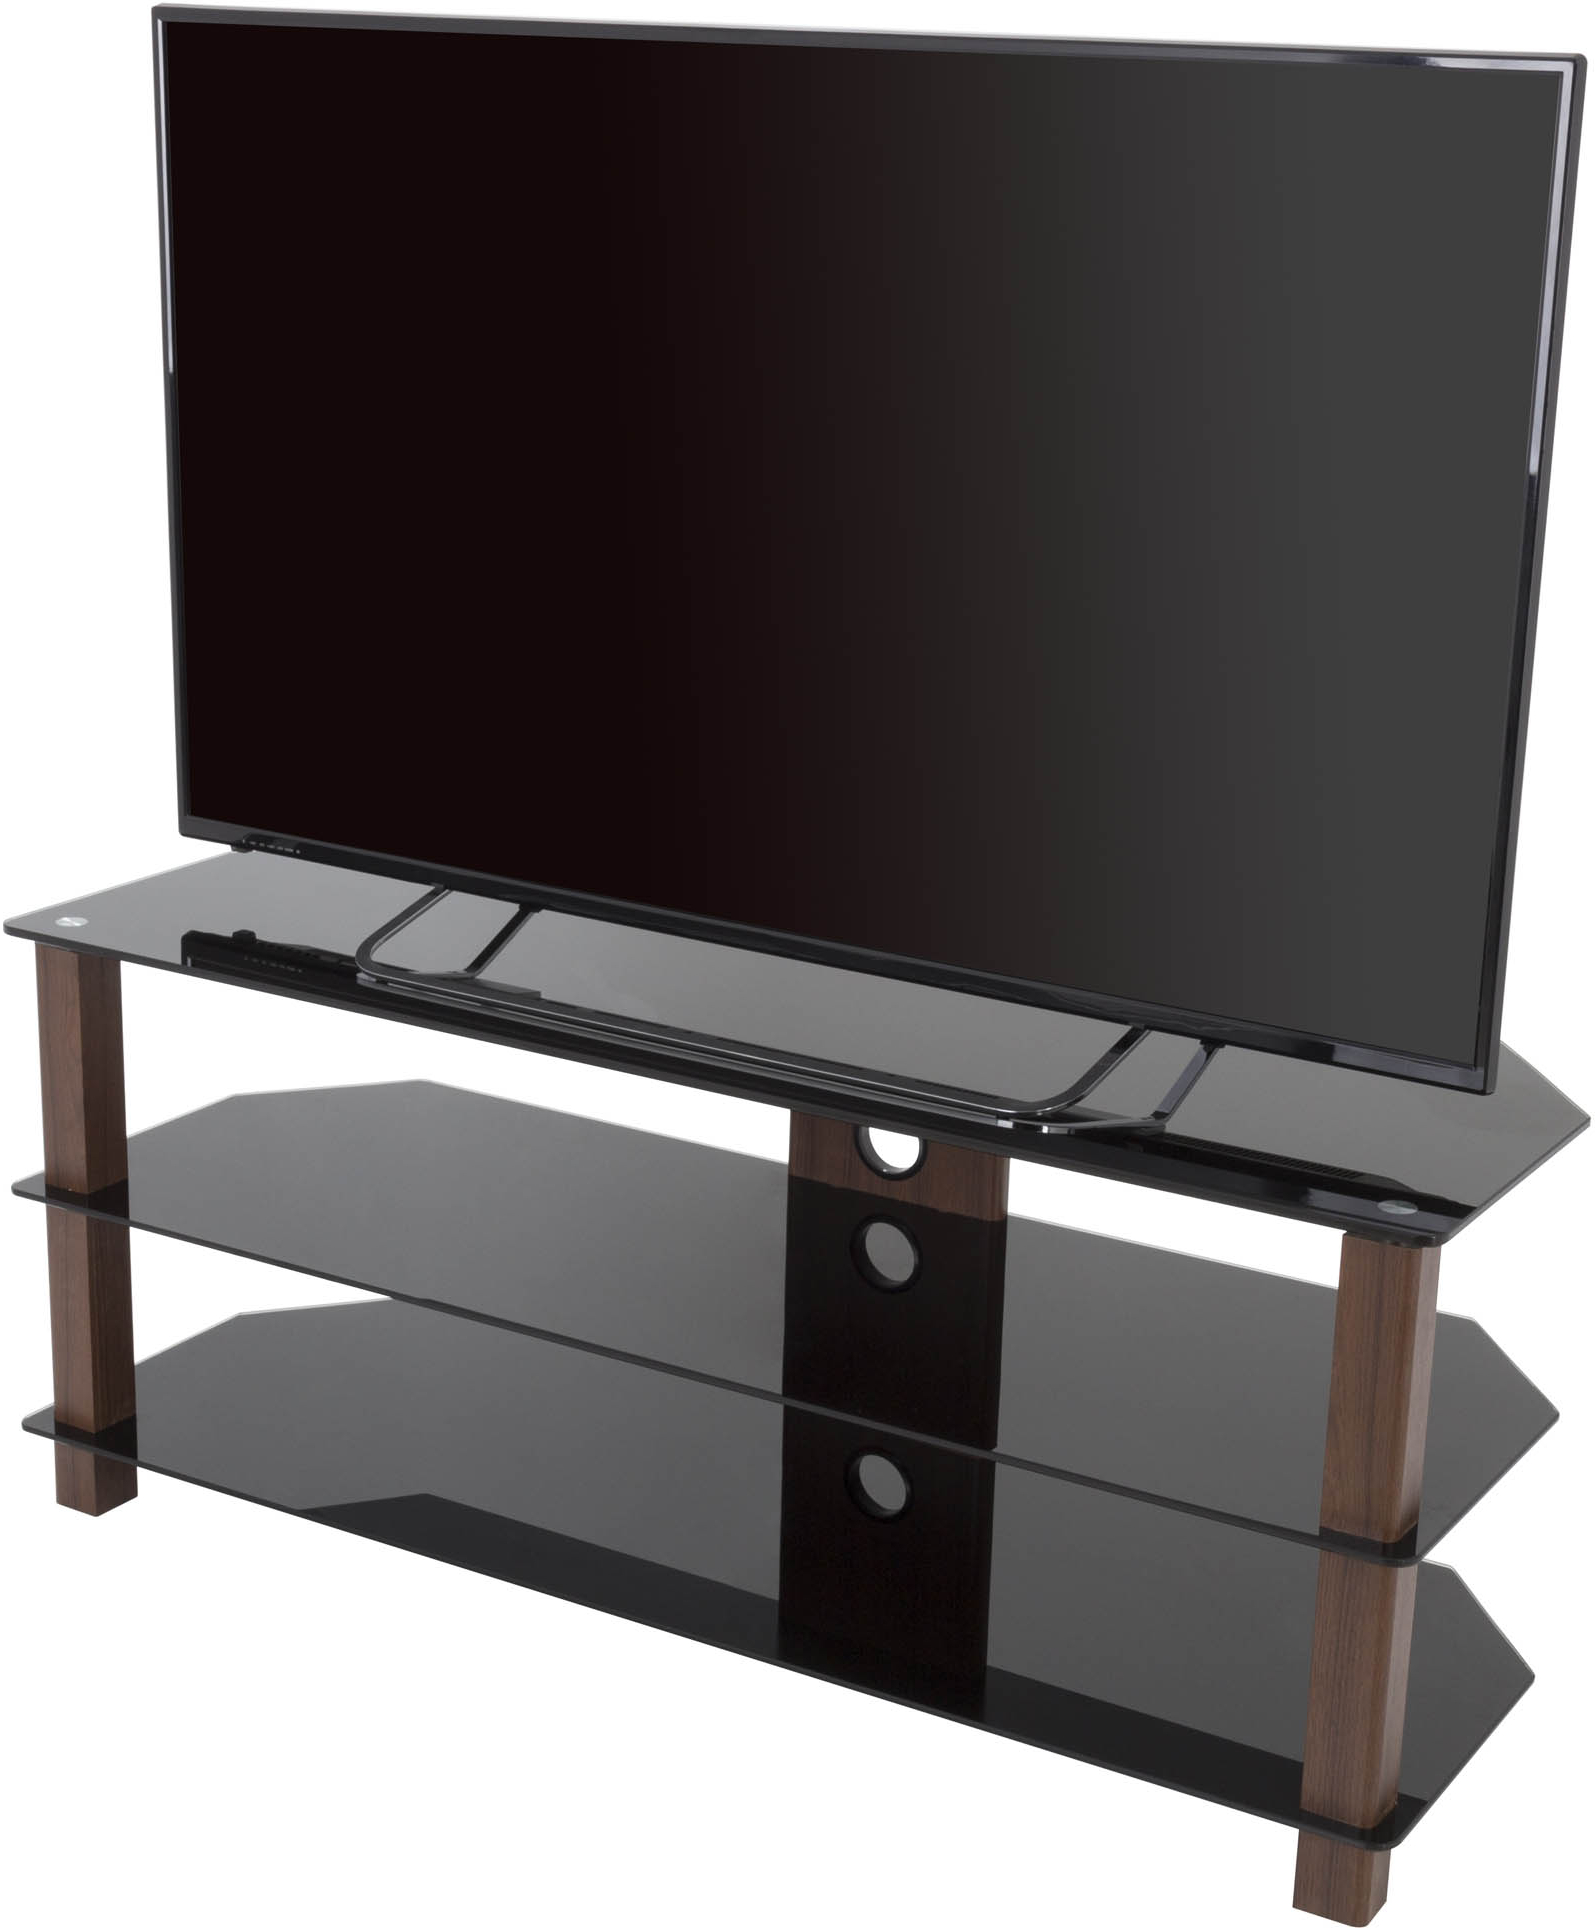 """Leafwood Tv Stands For Tvs Up To 60"""" With Best And Newest Avf Fs1250valwb3 Wg Series Glass Corner Tv Stand For Tvs (View 11 of 20)"""